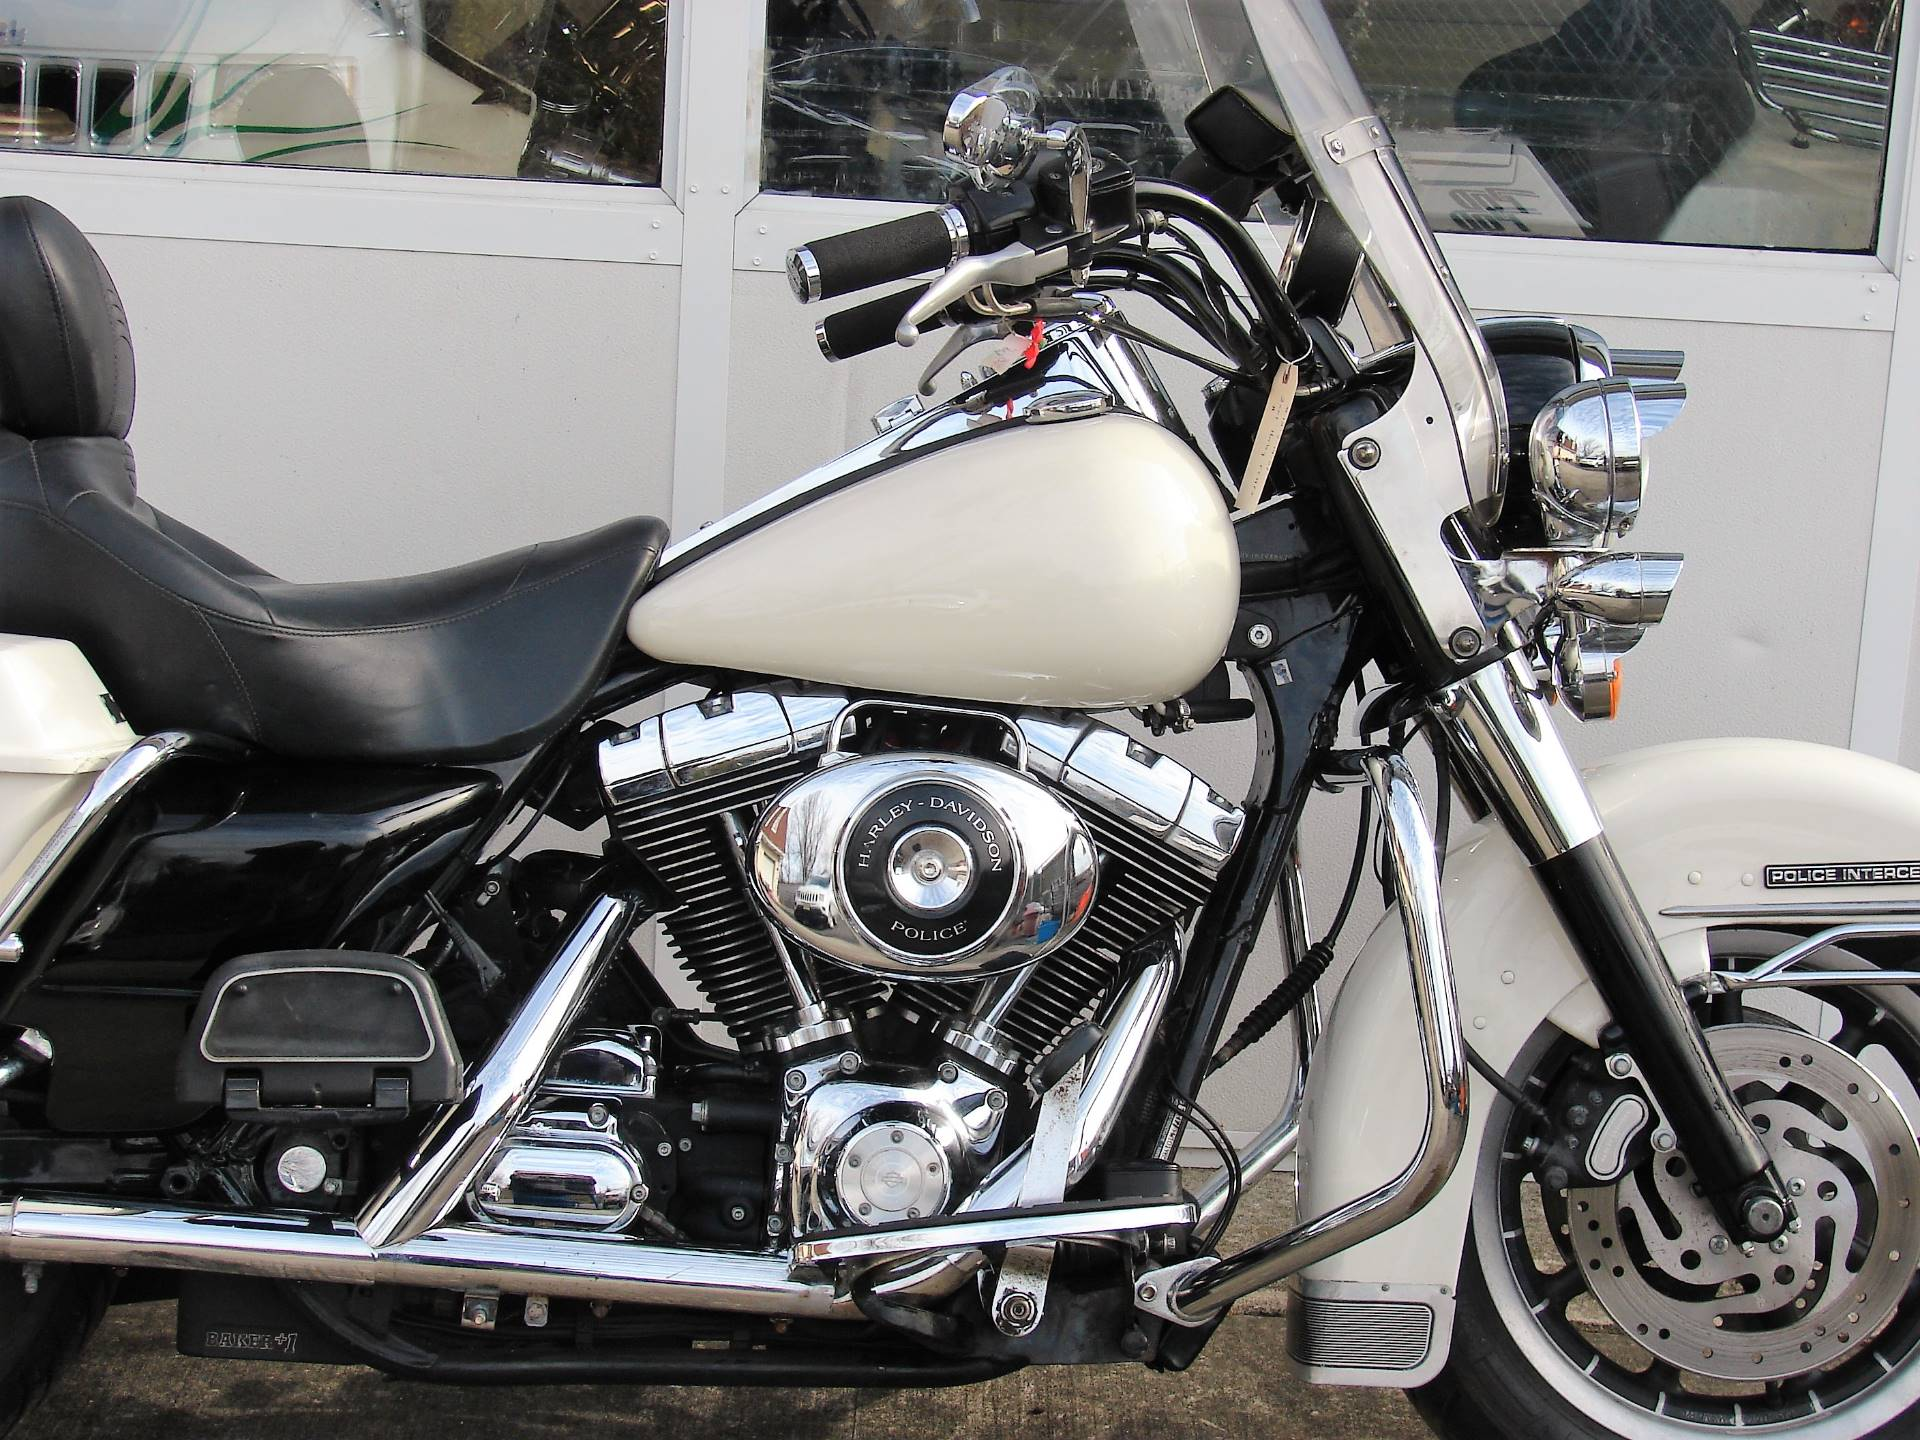 2001 Harley-Davidson FLHTPI Electra Glide (Police Special) - WHITE in Williamstown, New Jersey - Photo 2